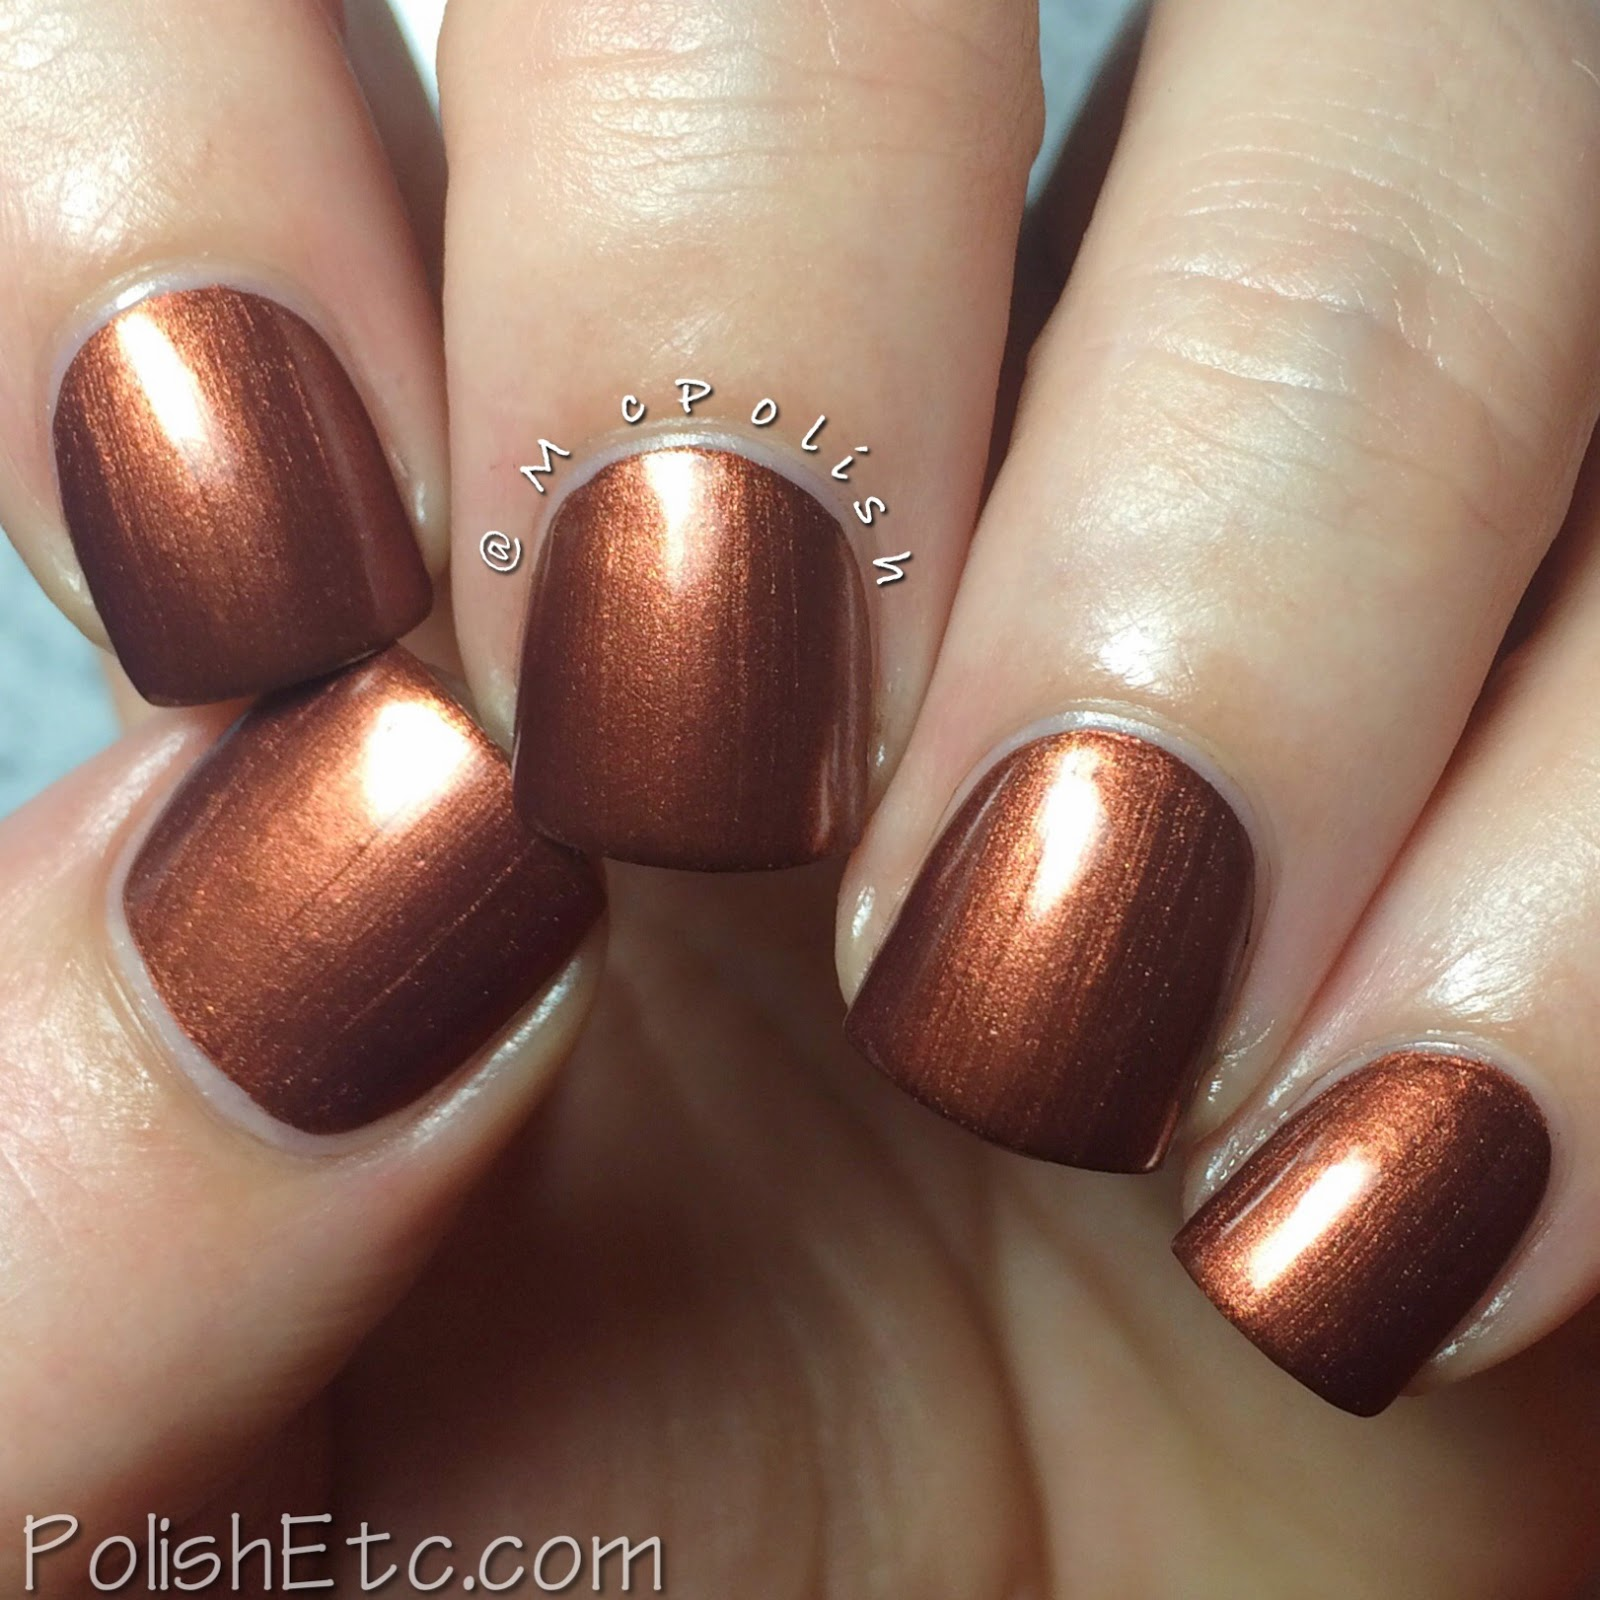 Tillie Polish Glamorous Collection - McPolish - Royals